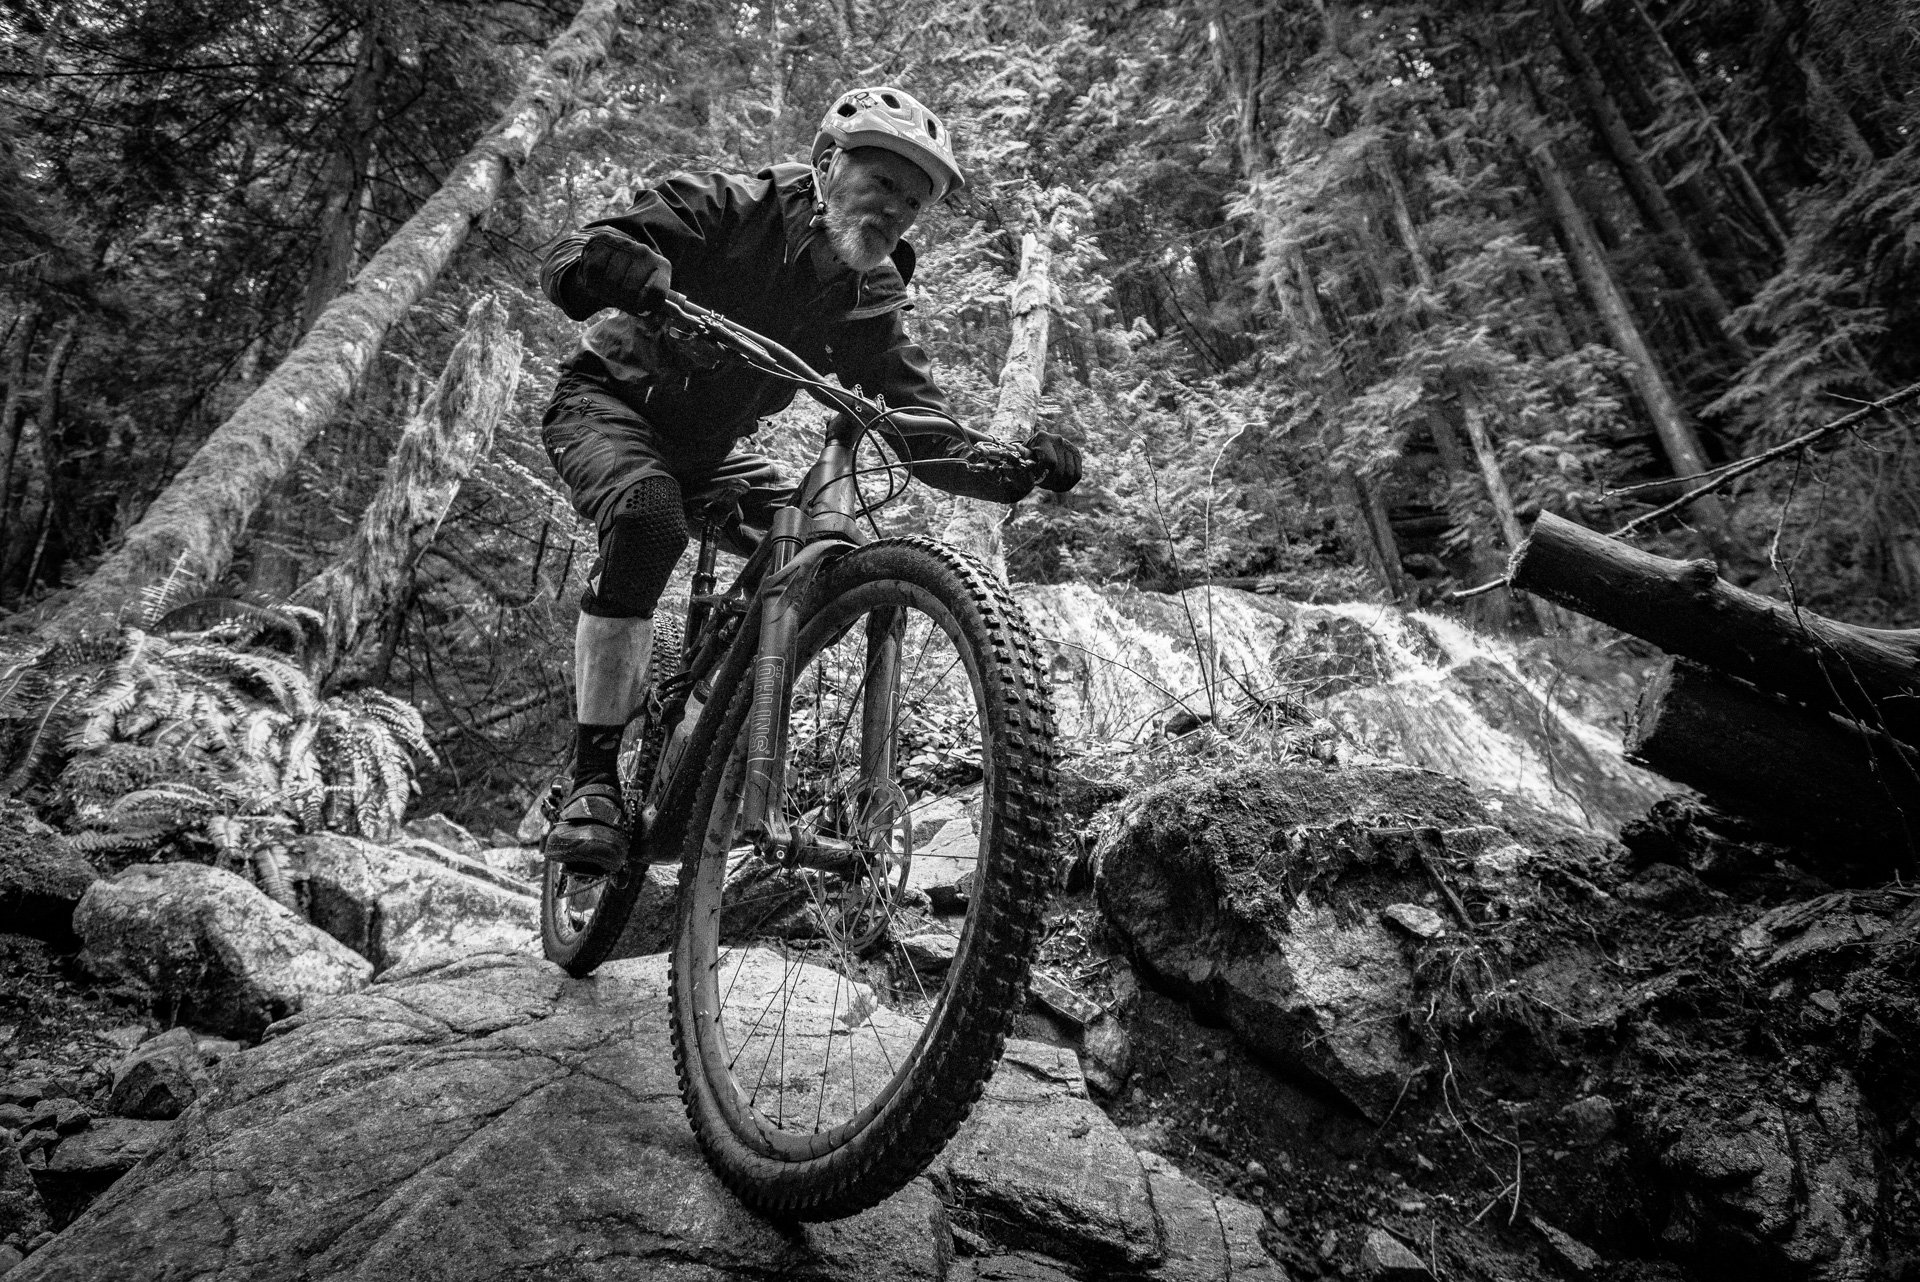 nsmb_2017_geareview_specialized_enduro29_PerrySchebel-7741.jpg